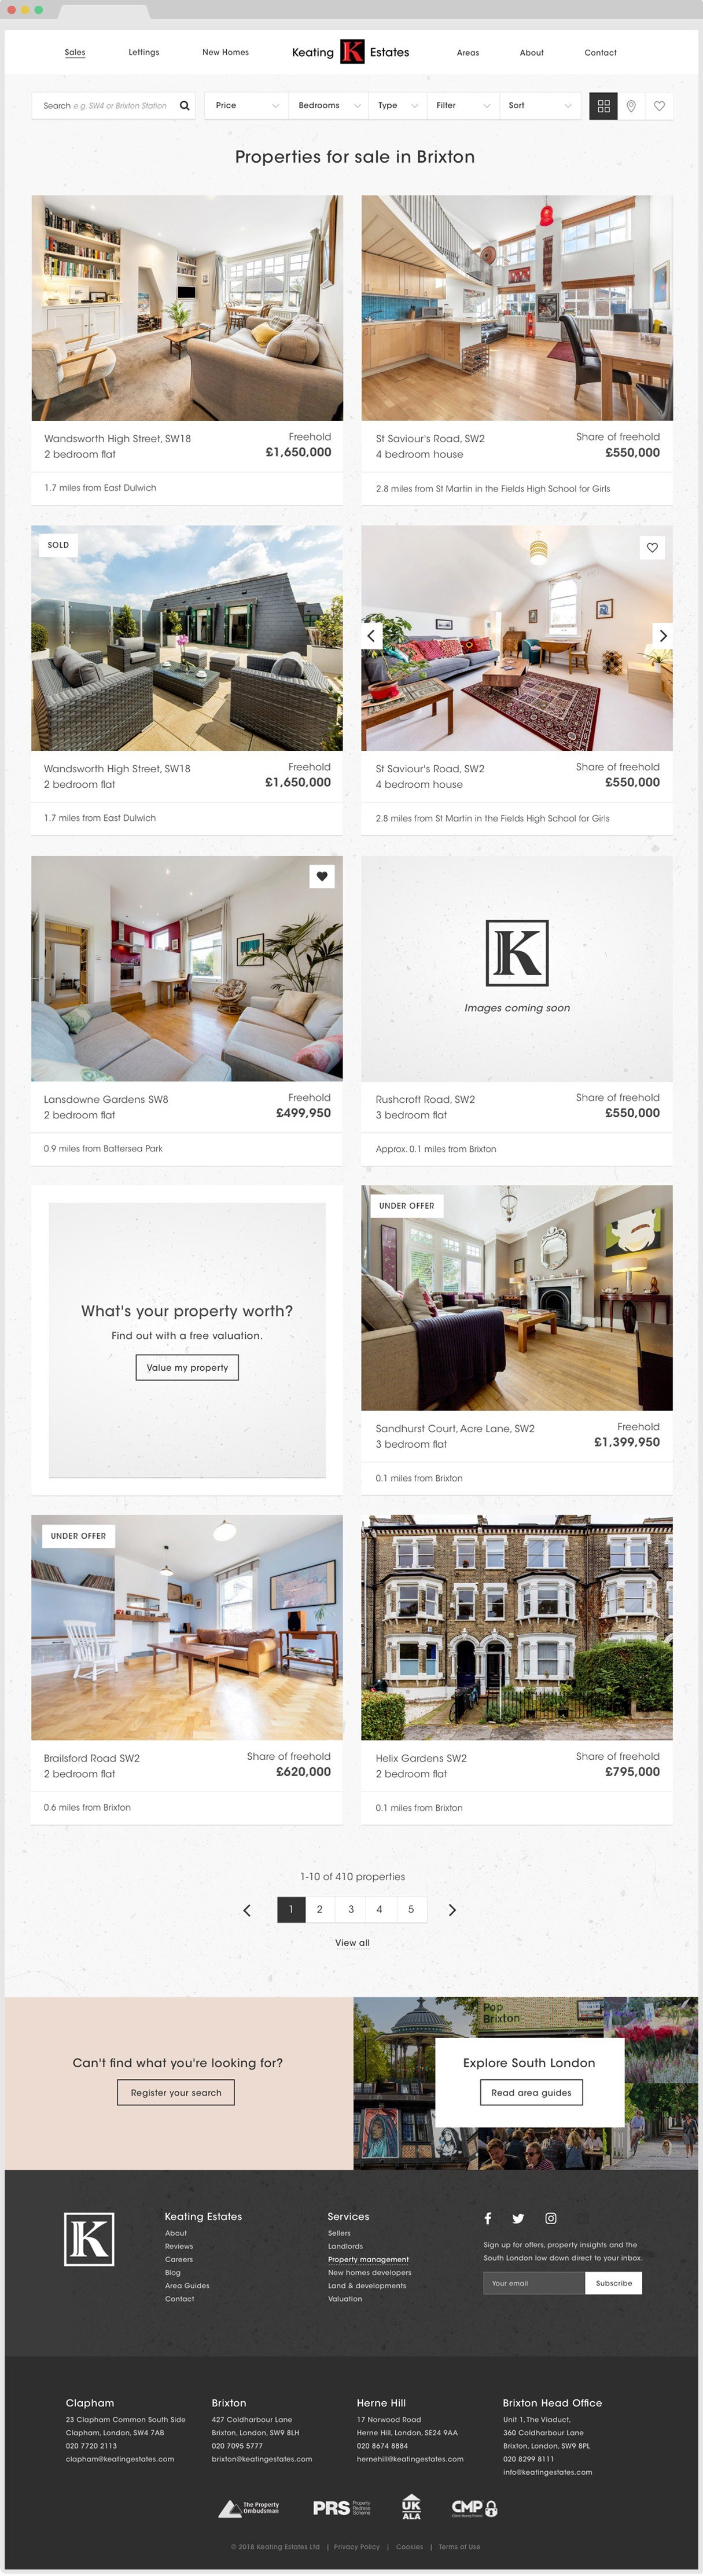 Keating properties